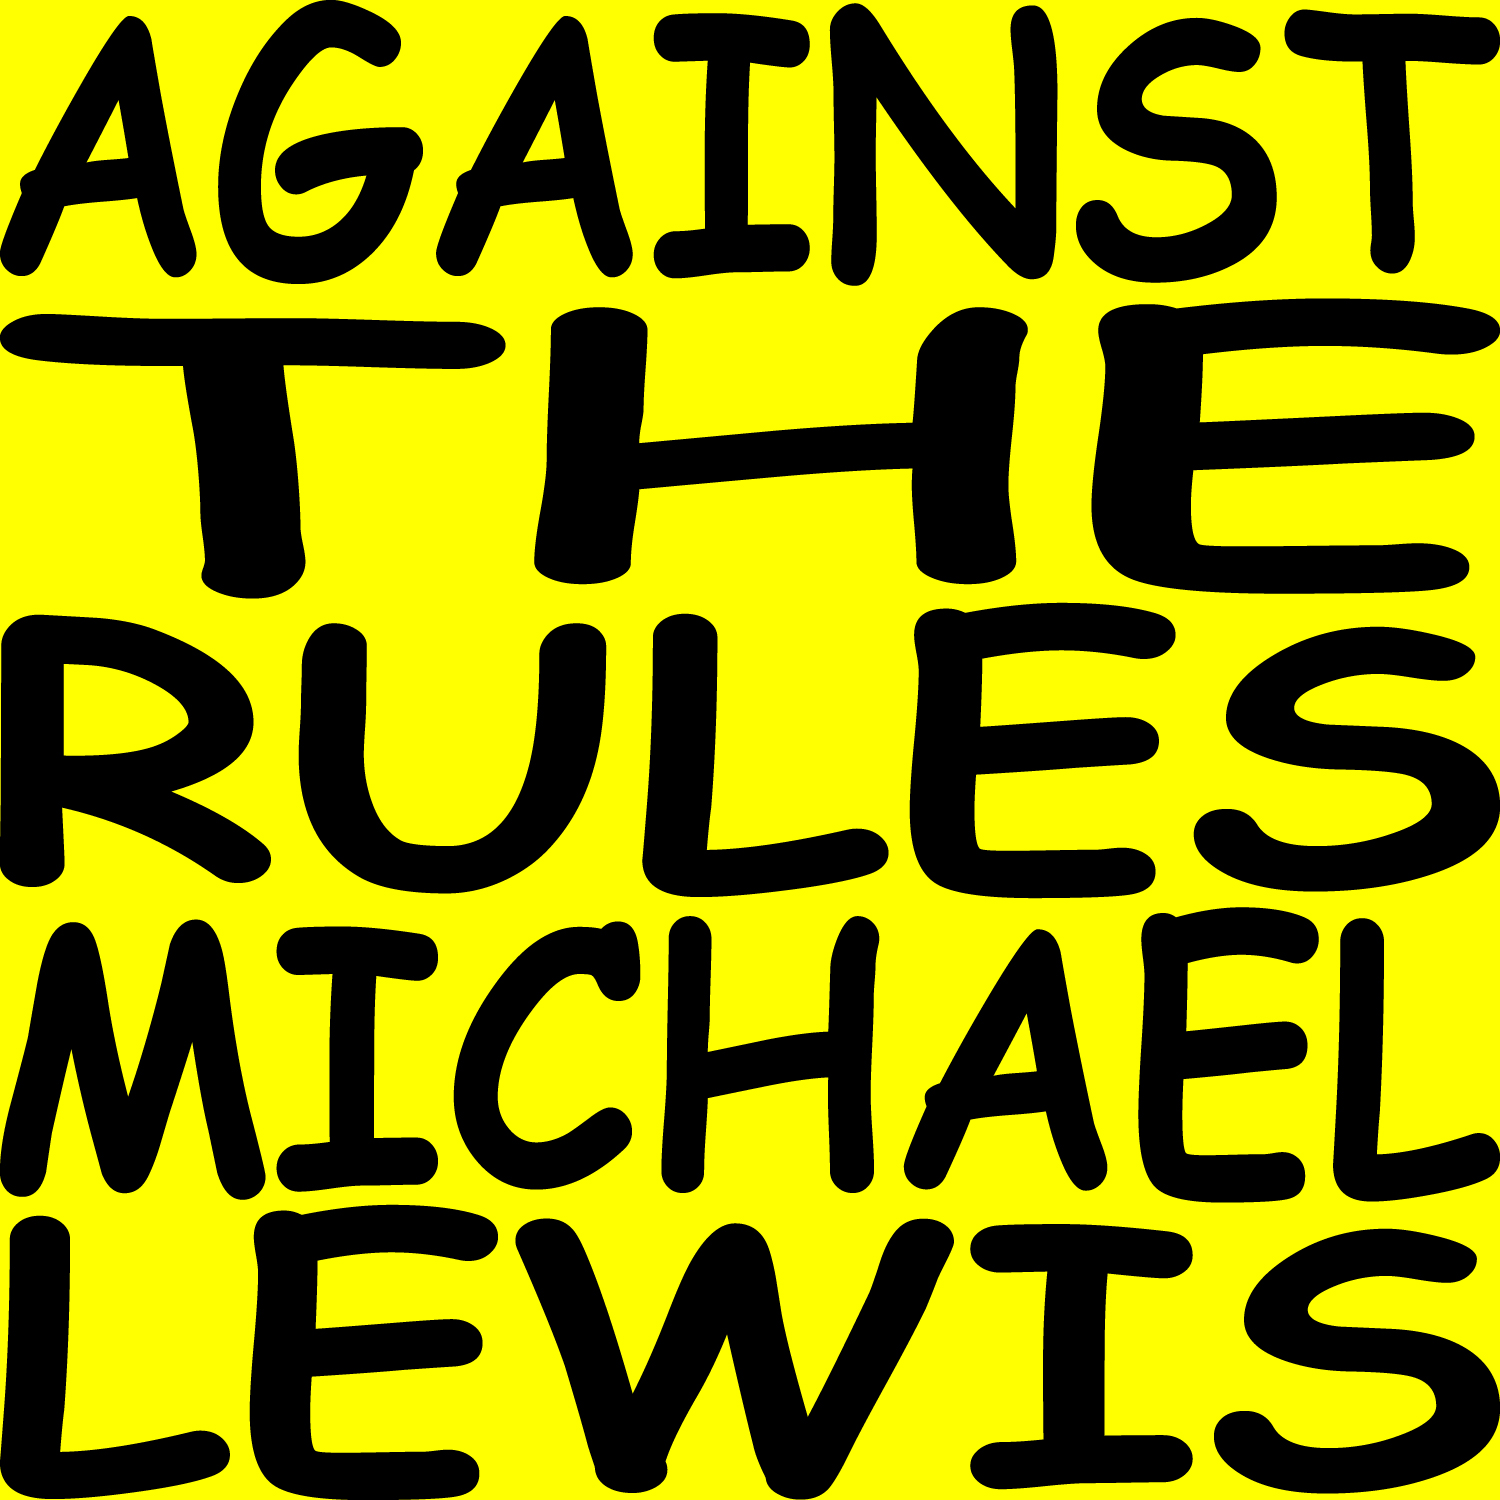 Against the Rules with Michael Lewis - Michael Lewis, journalist and author, takes a look at fairness. Listen